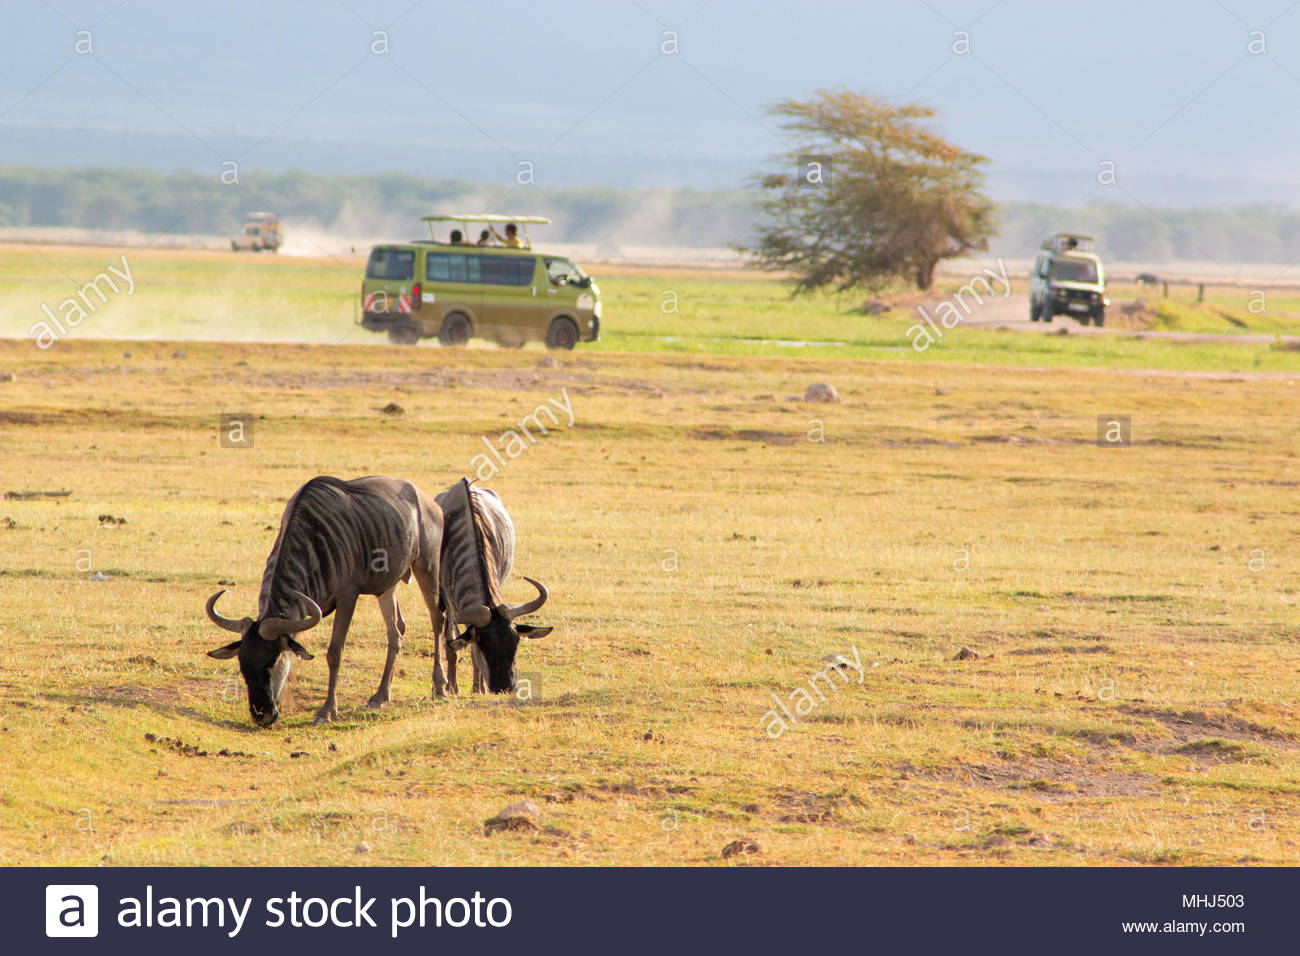 Amboseli National Park (Kenya), 21 February 2018. Wildebeest grazing grass, with jeep in the background during a safari. - Stock Image